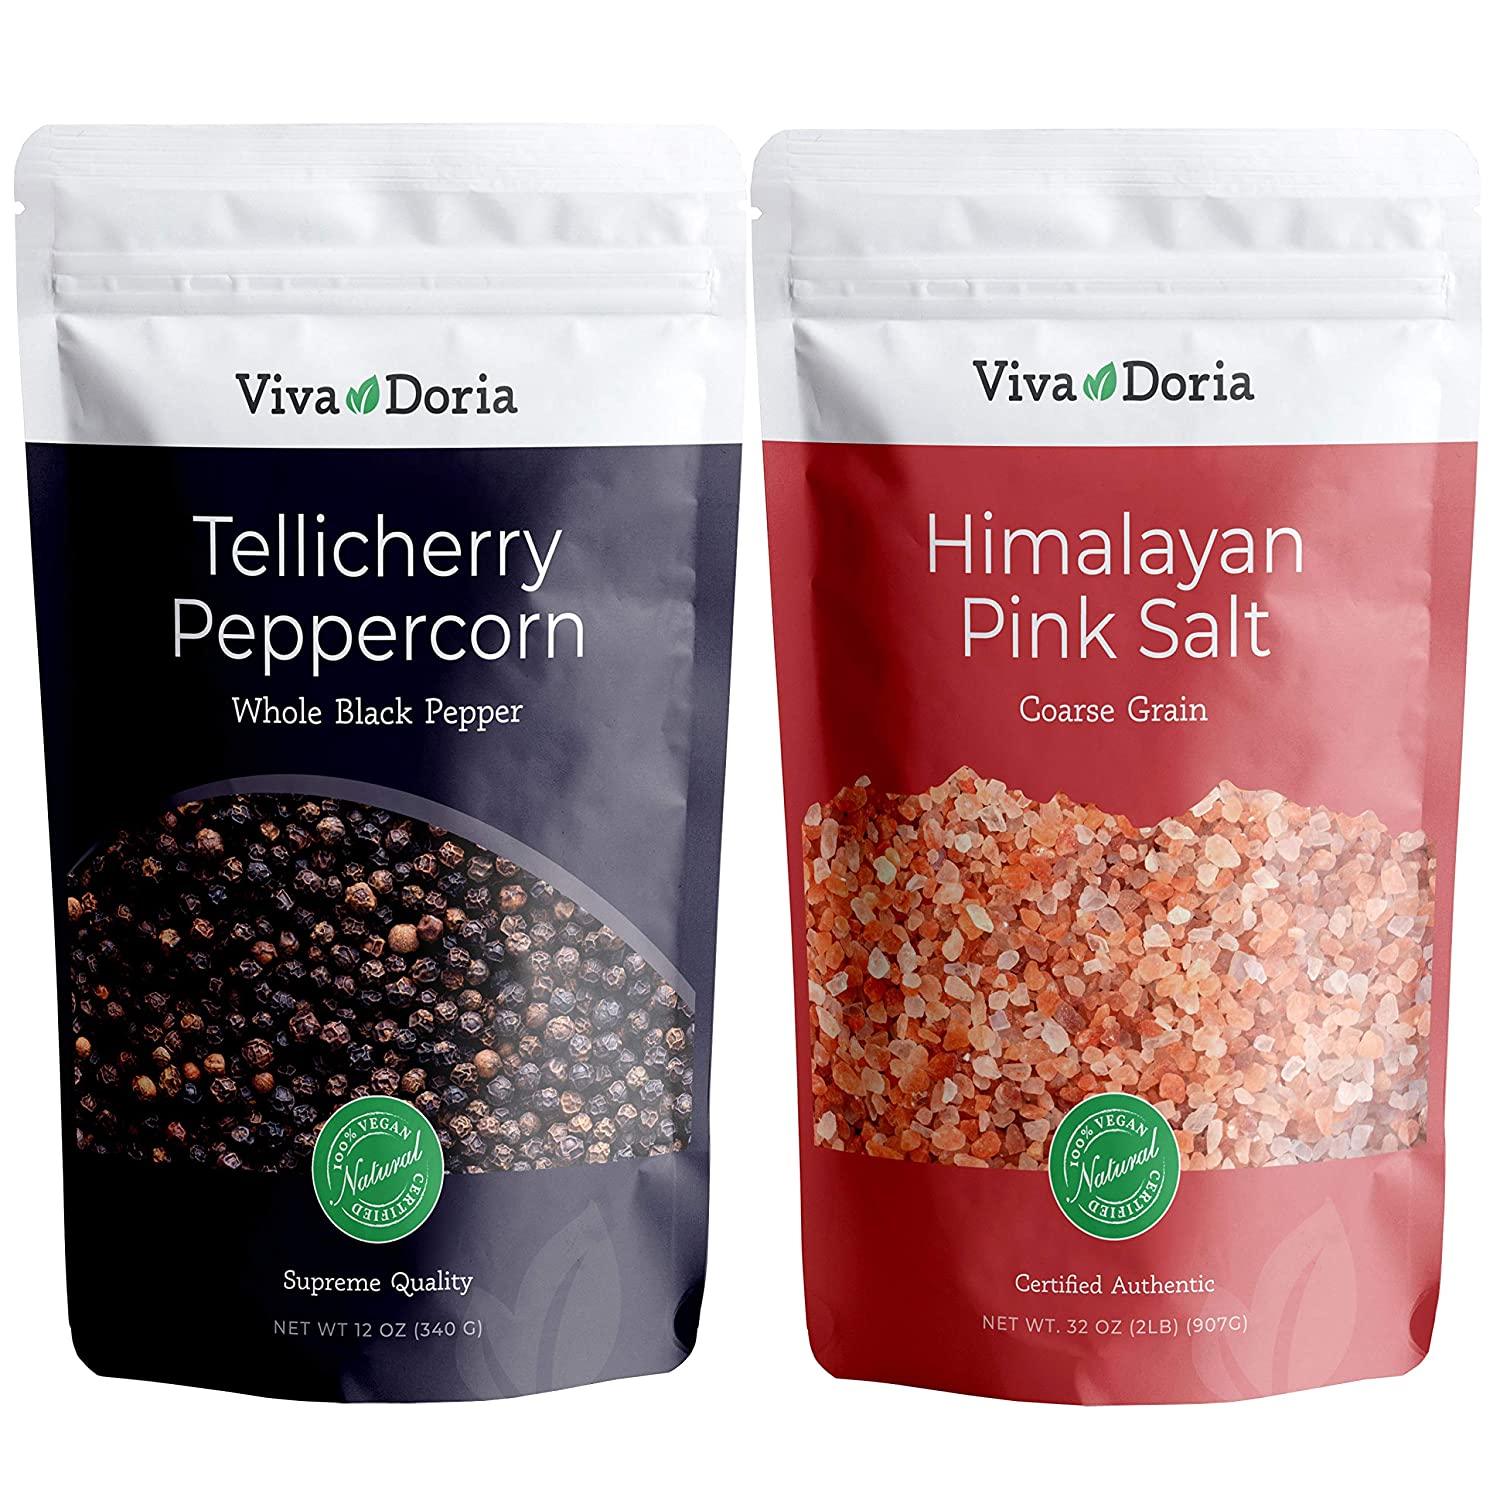 Viva Doria Tellicherry Peppercorn - Black Peppercorns (Steam Sterilized Whole Black Pepper) 12 oz and Himalayan Pink Salt (Coarse Grain) 2 lb for Grinder Refills